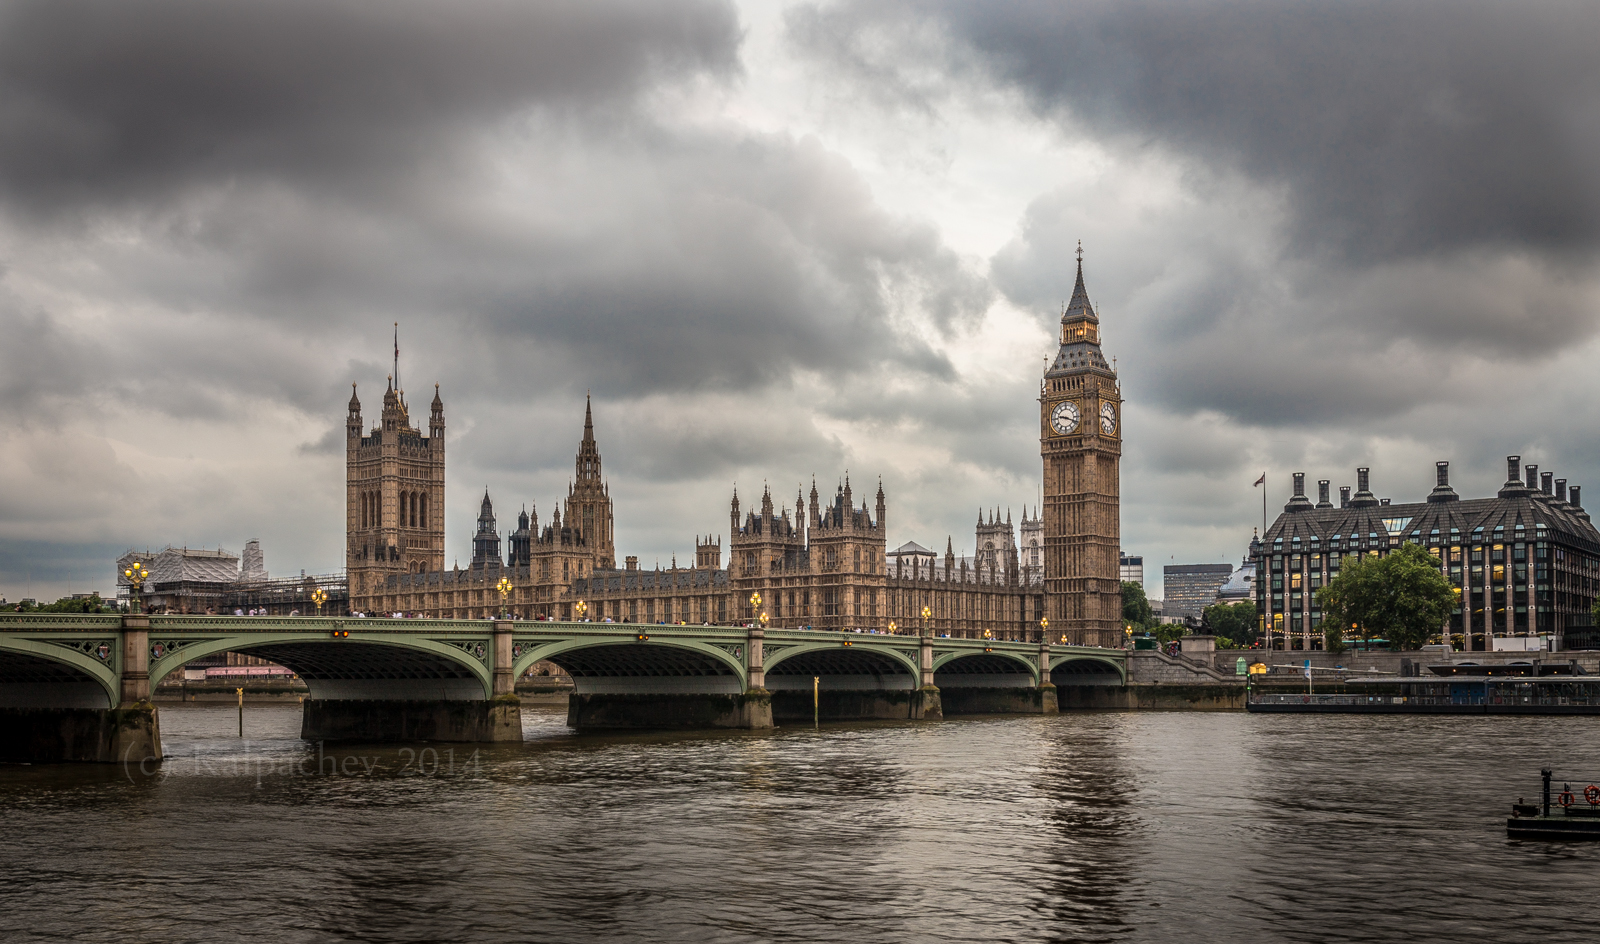 House of Parliament and Big Ben – London